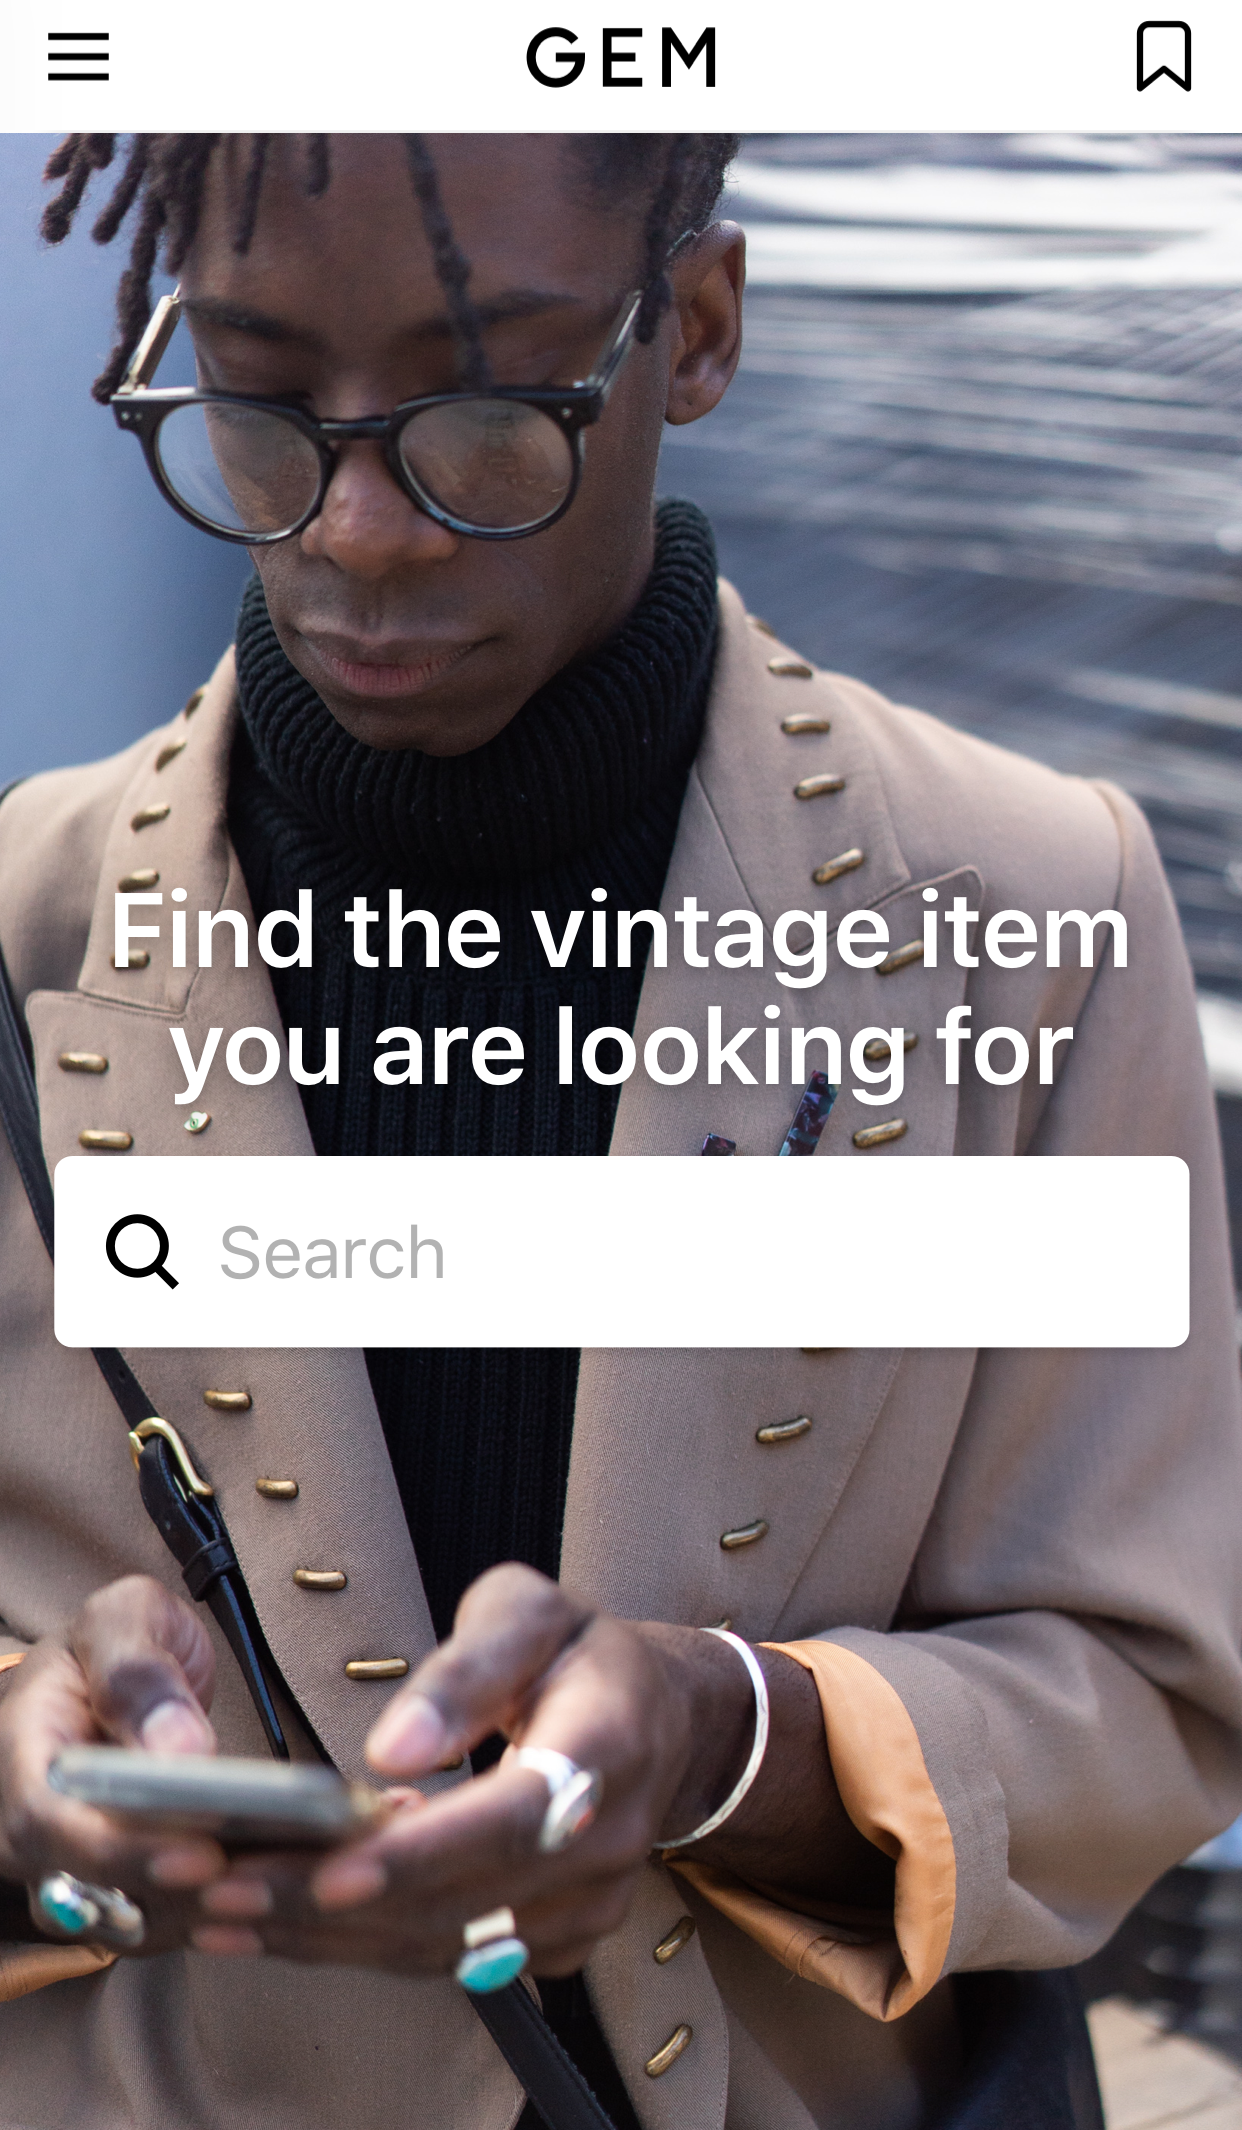 Gem Vintage Clothing app